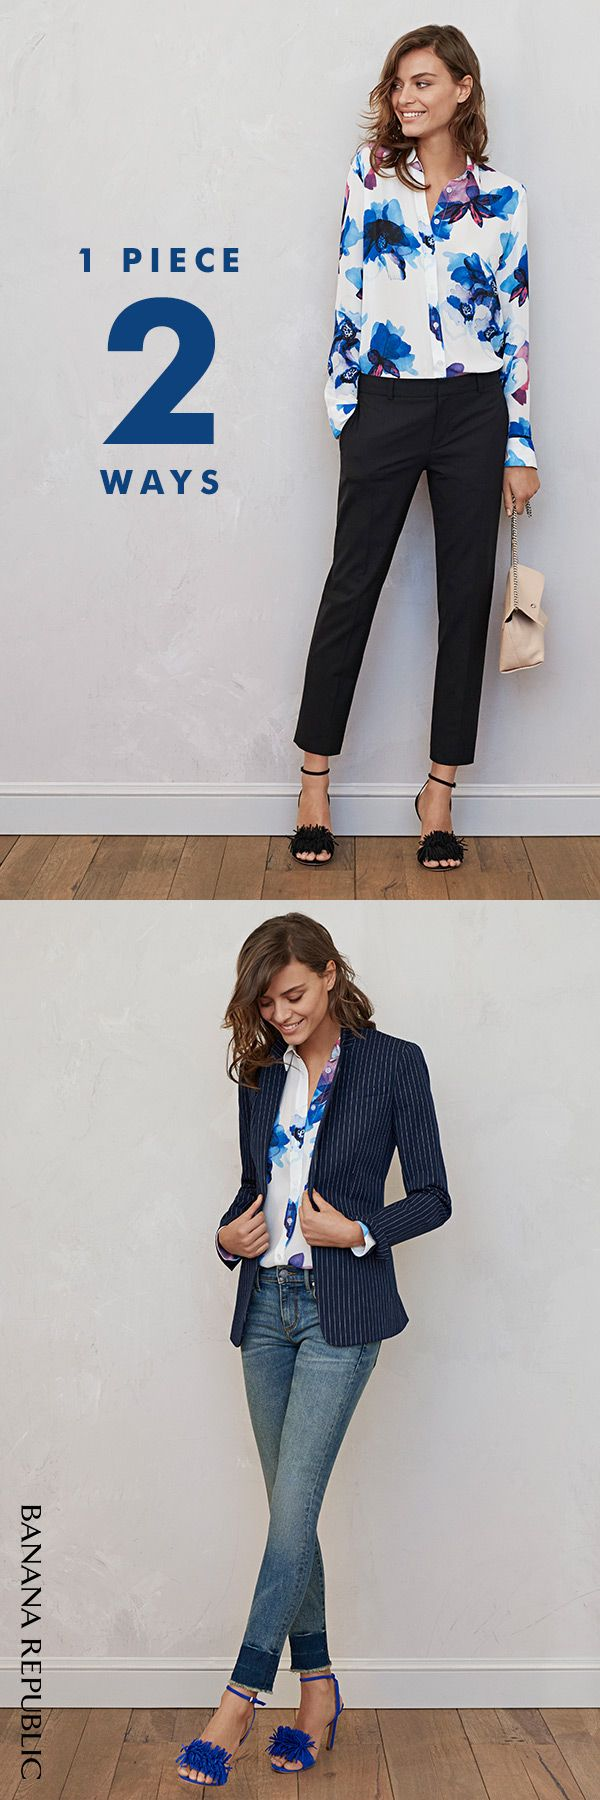 A watercolor floral print shirt is sure to give your winter wardrobe a jolt and become your go-to essential come spring. Invigorate your favorite black pants with a dose of femininity and a pair of delicate honey fringe sandals for a soft 9-5 look – and beyond. Or mix things up with a pinstripe boyfriend blazer, skinny faded denim and a bright blue heel. This shirt is sheer, pretty perfection now, later and always.